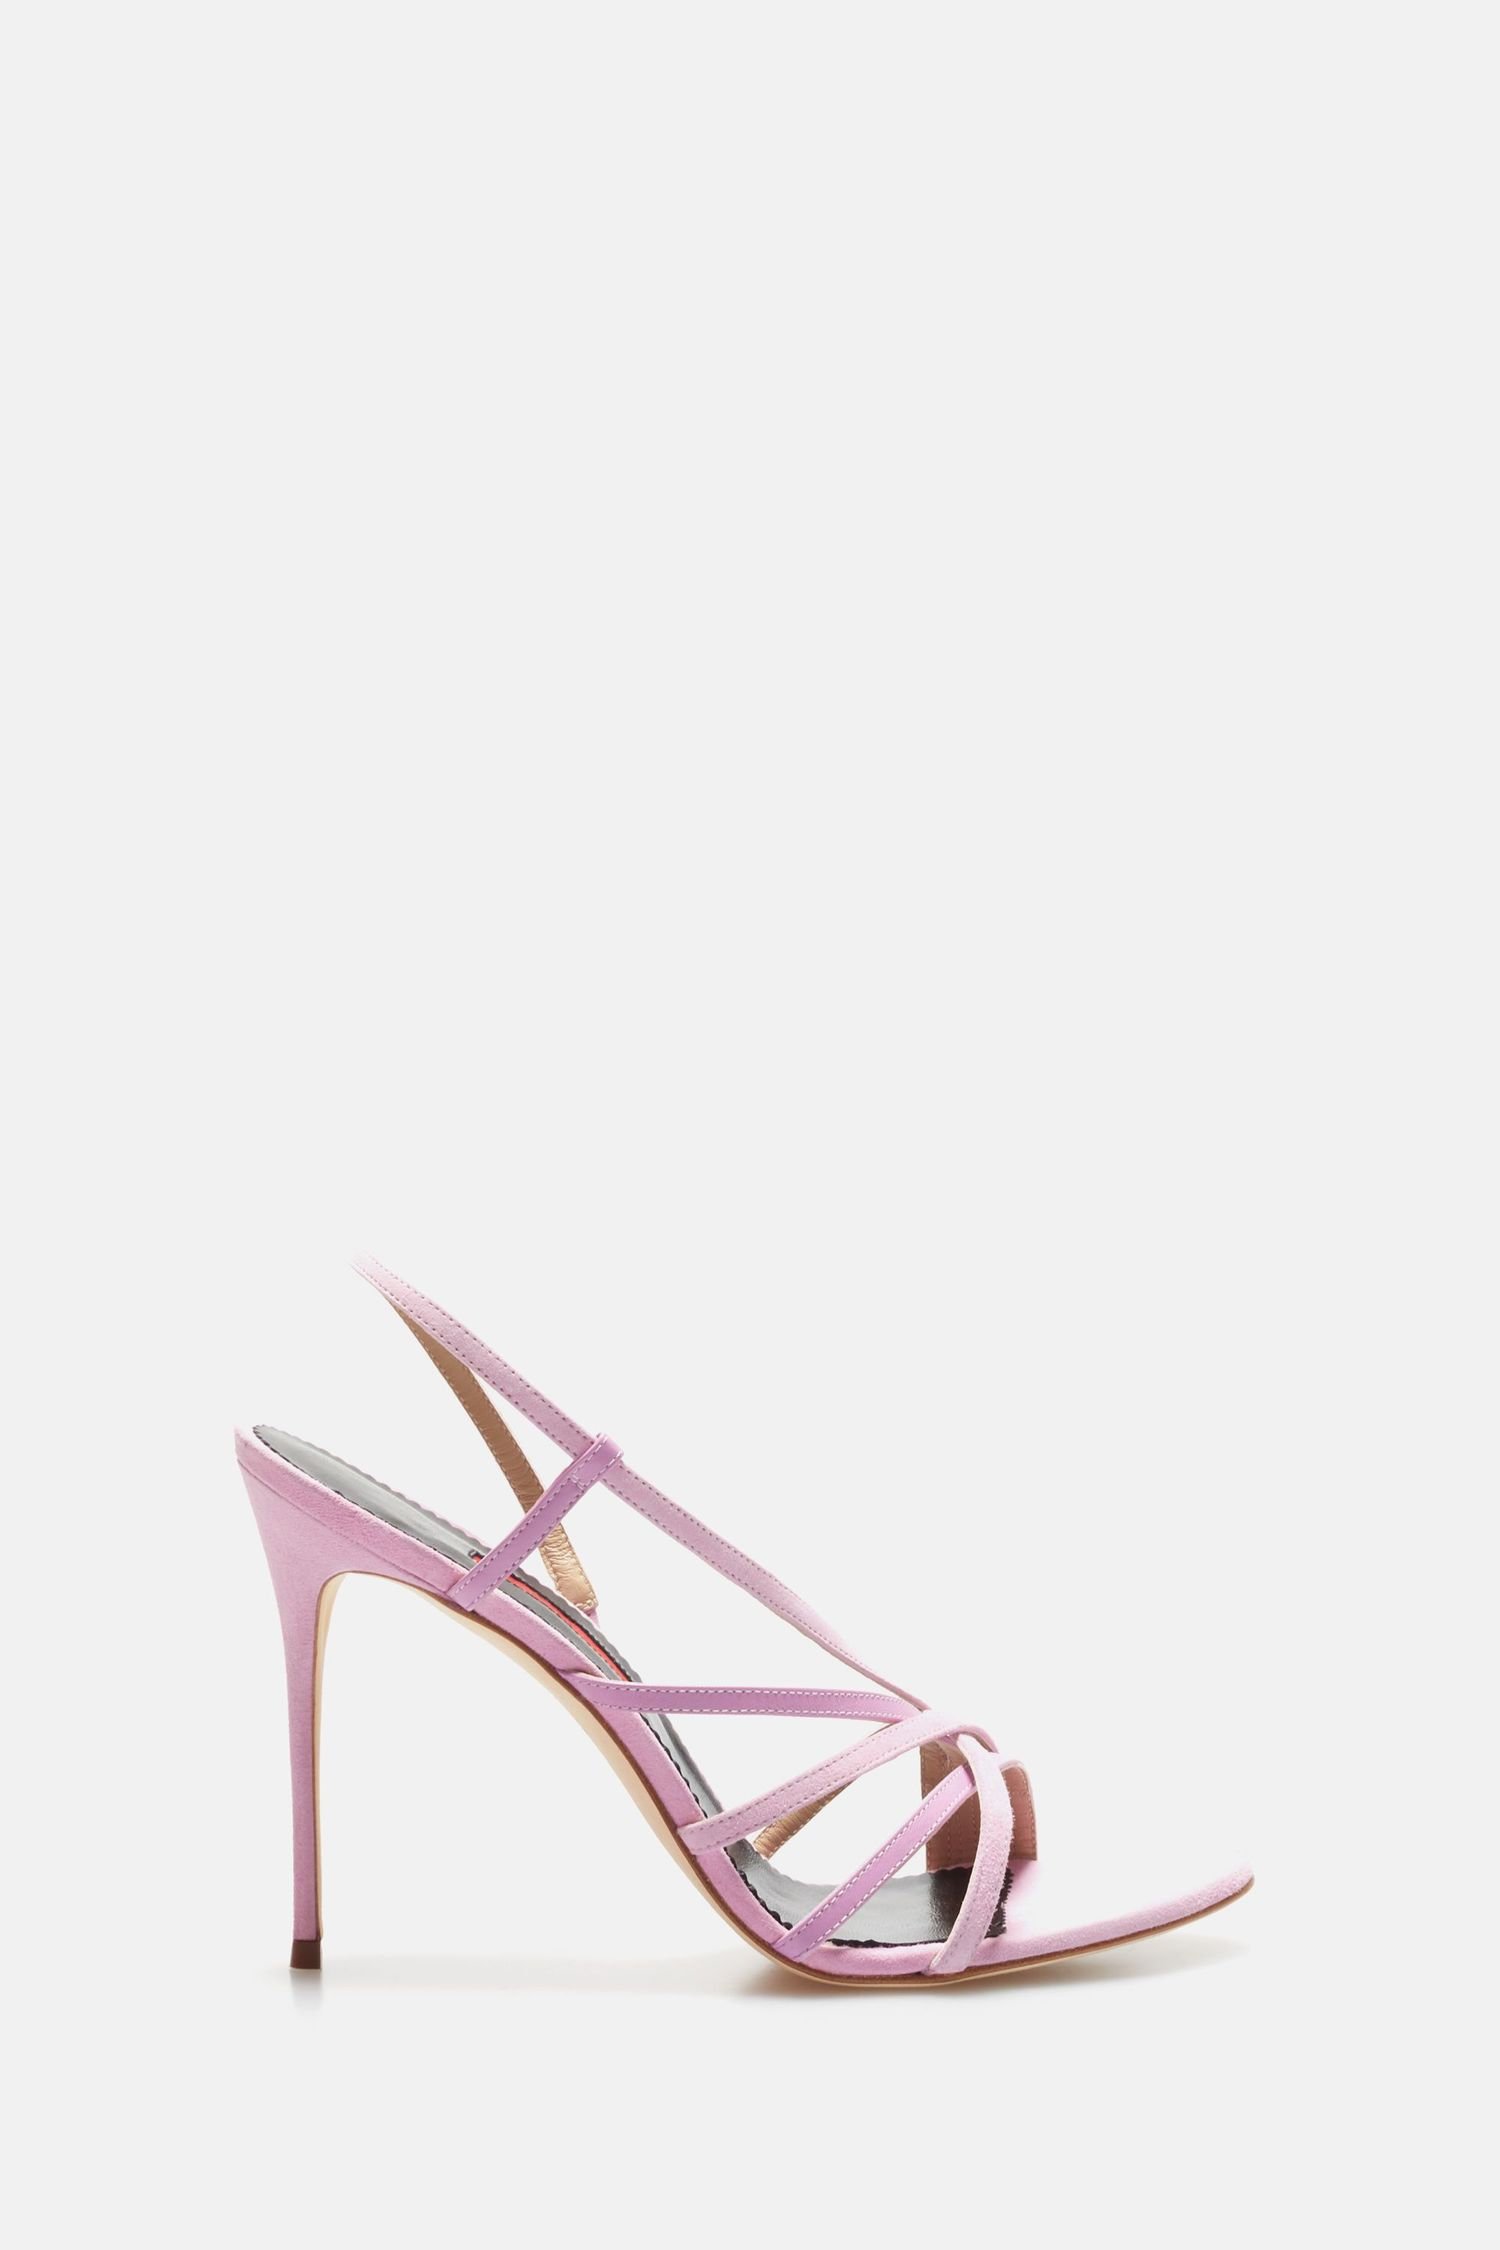 Leather and suede sandals with straps